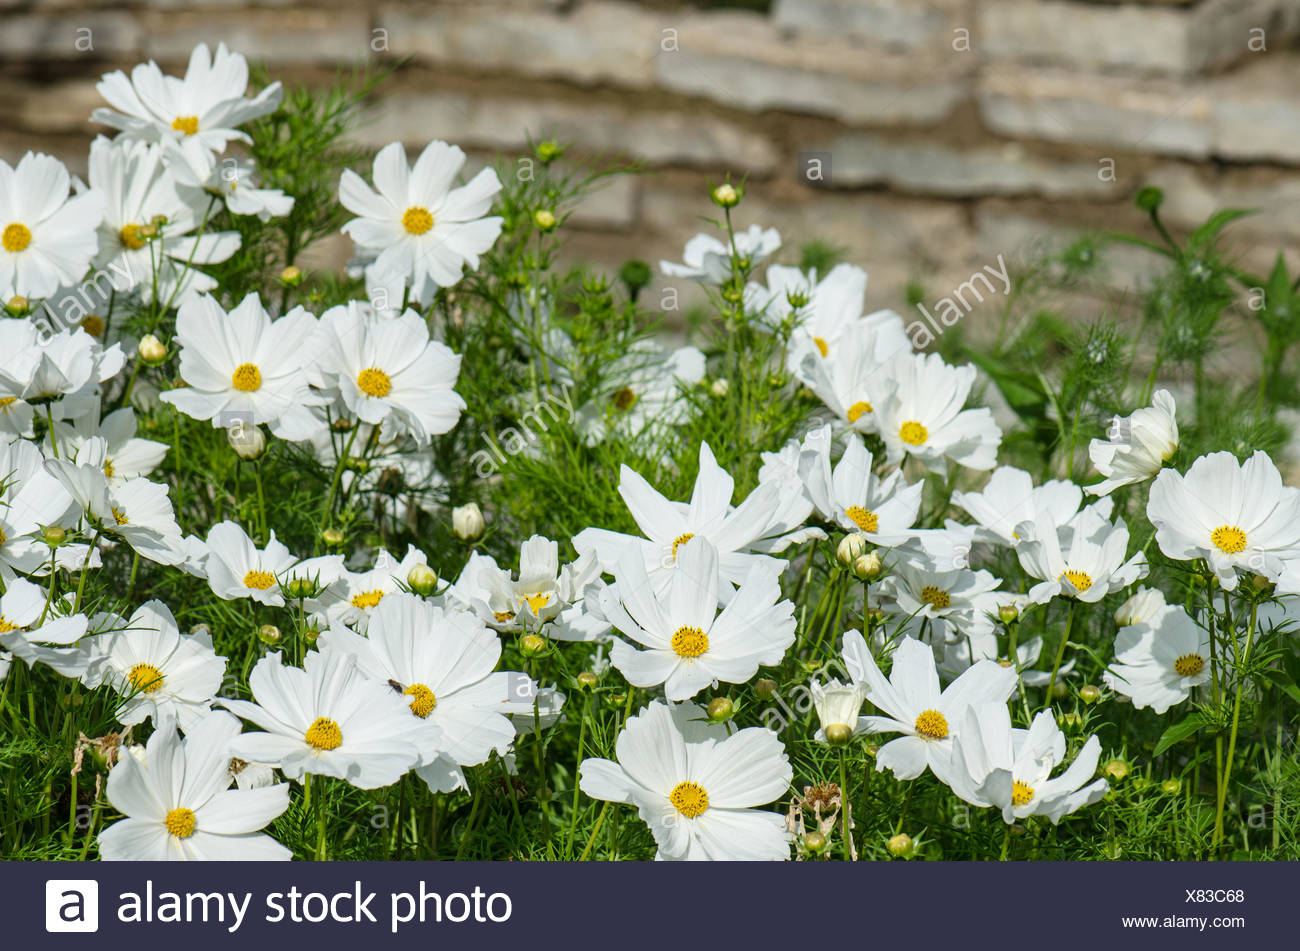 White Flower On A Bed With Other Plants Close Up Stock Photo